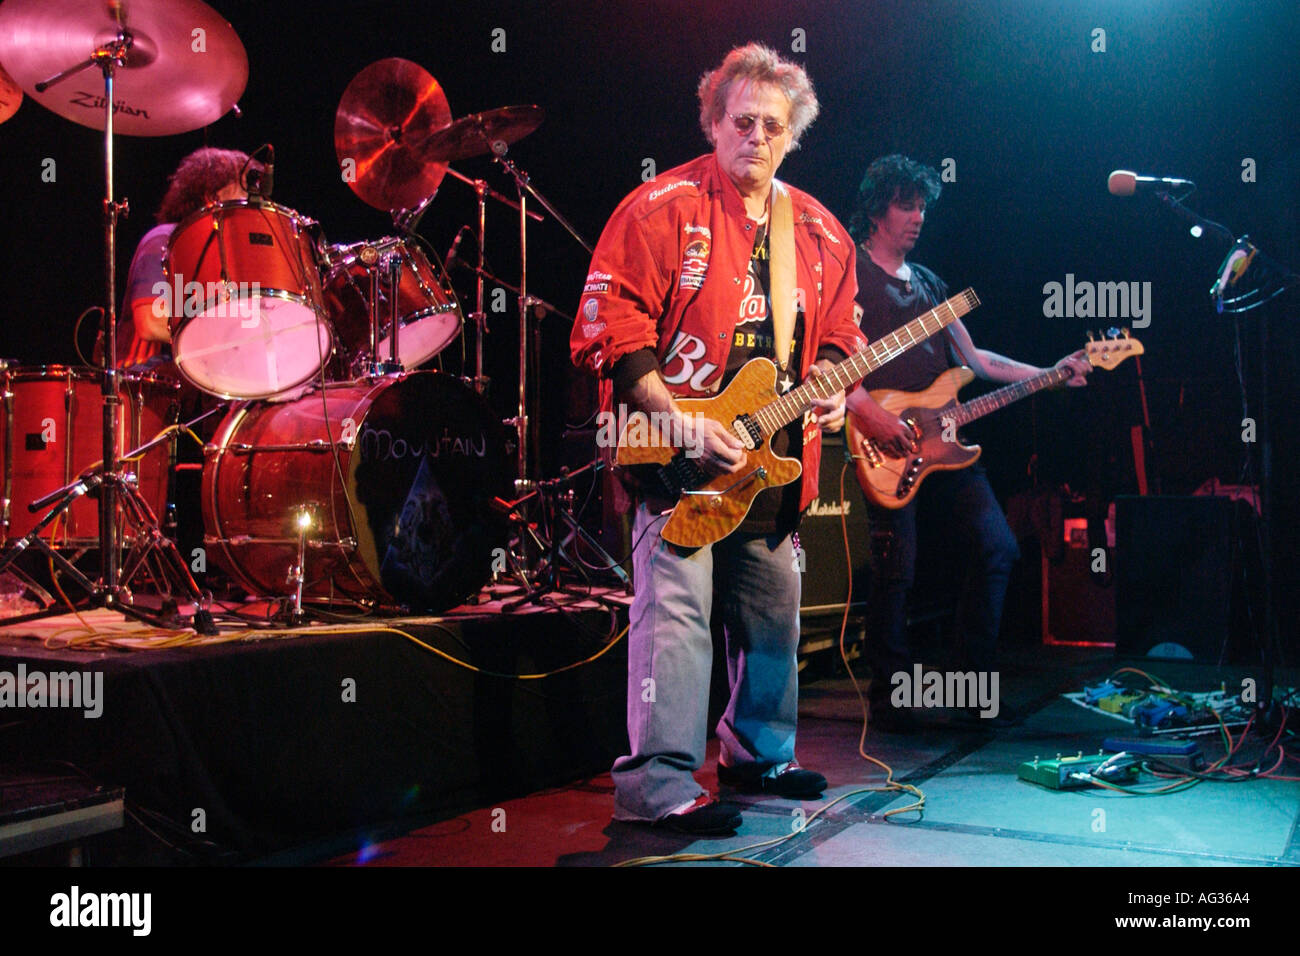 Legendäre US-amerikanische Rock-Band Mountain Leslie West Gitarre Corky Laing drums Richie Scarlet bass Stockbild